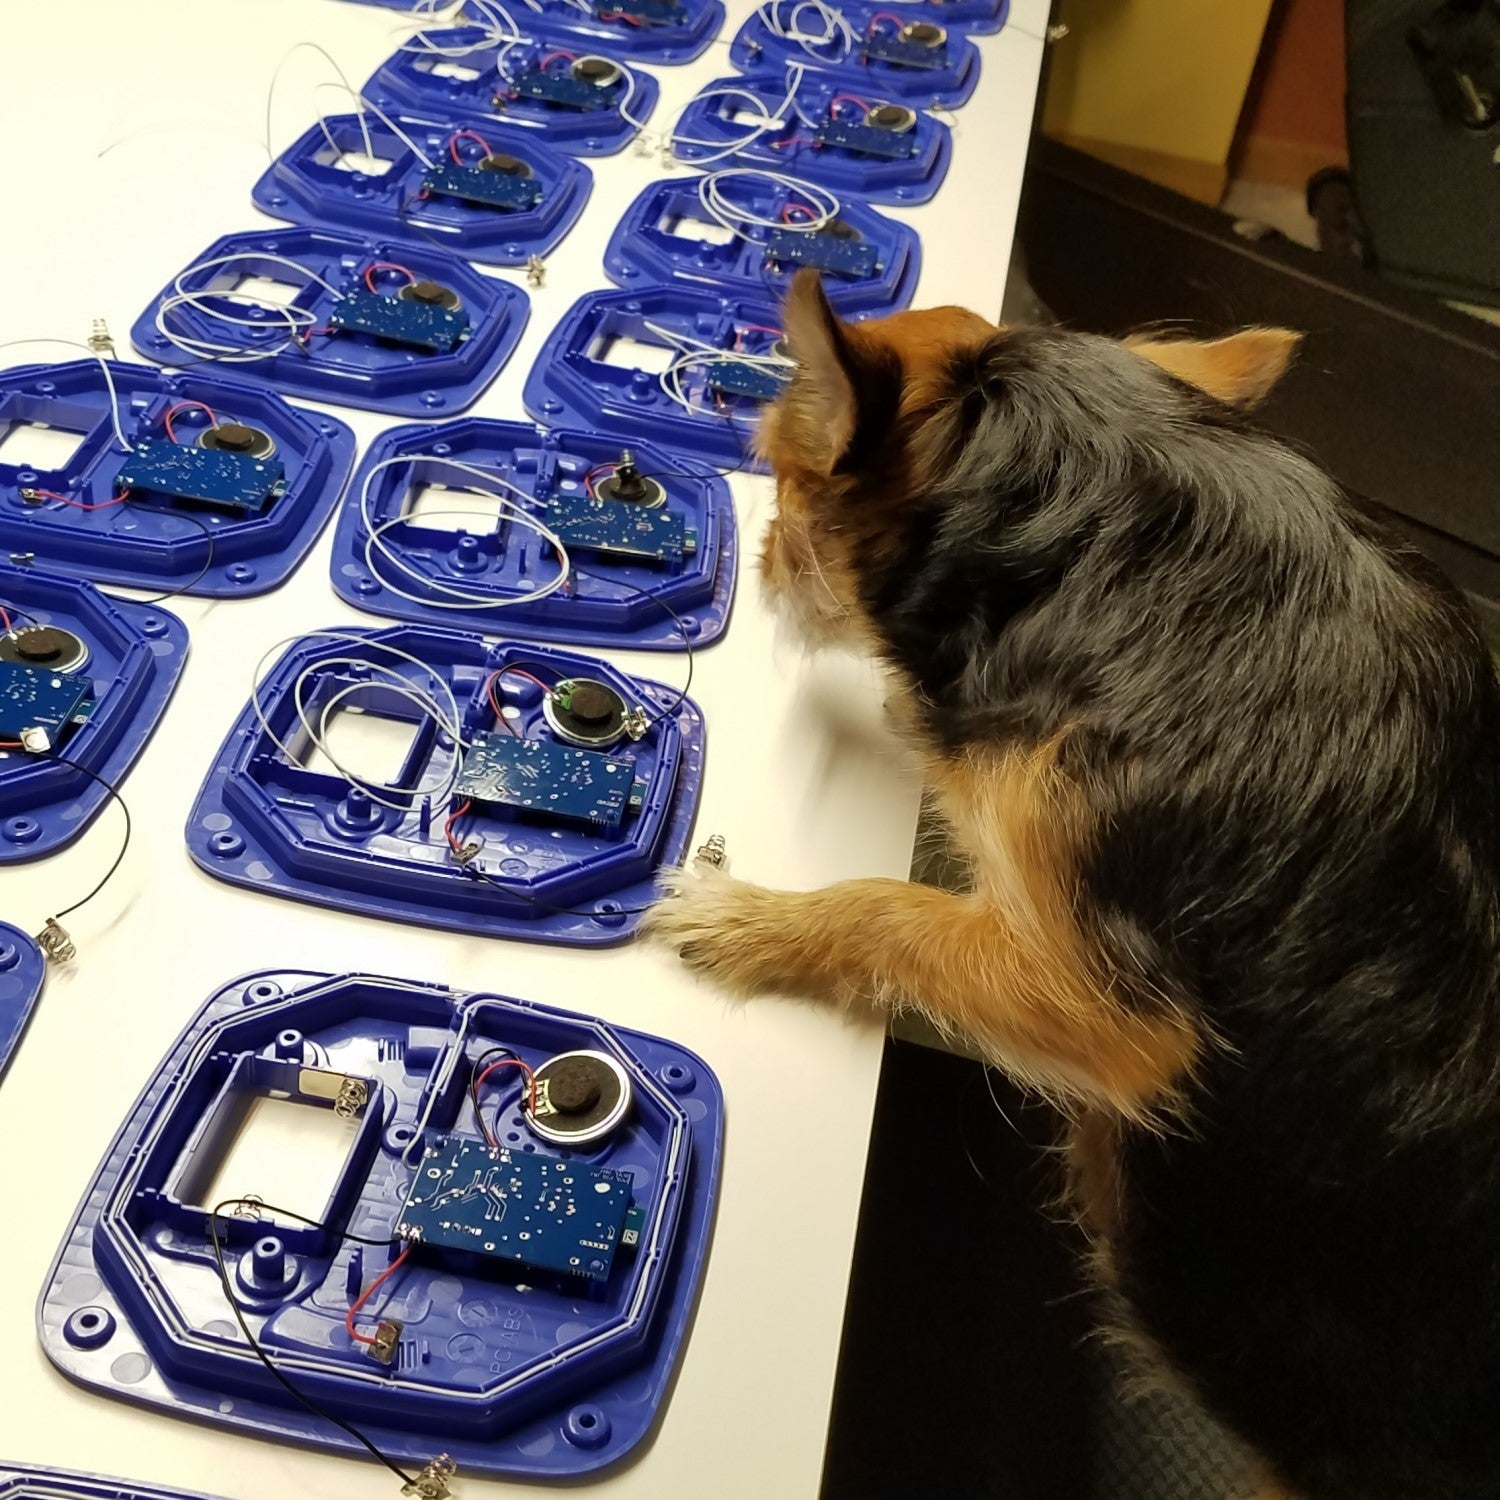 Reese inspecting production line of Paws2Go units